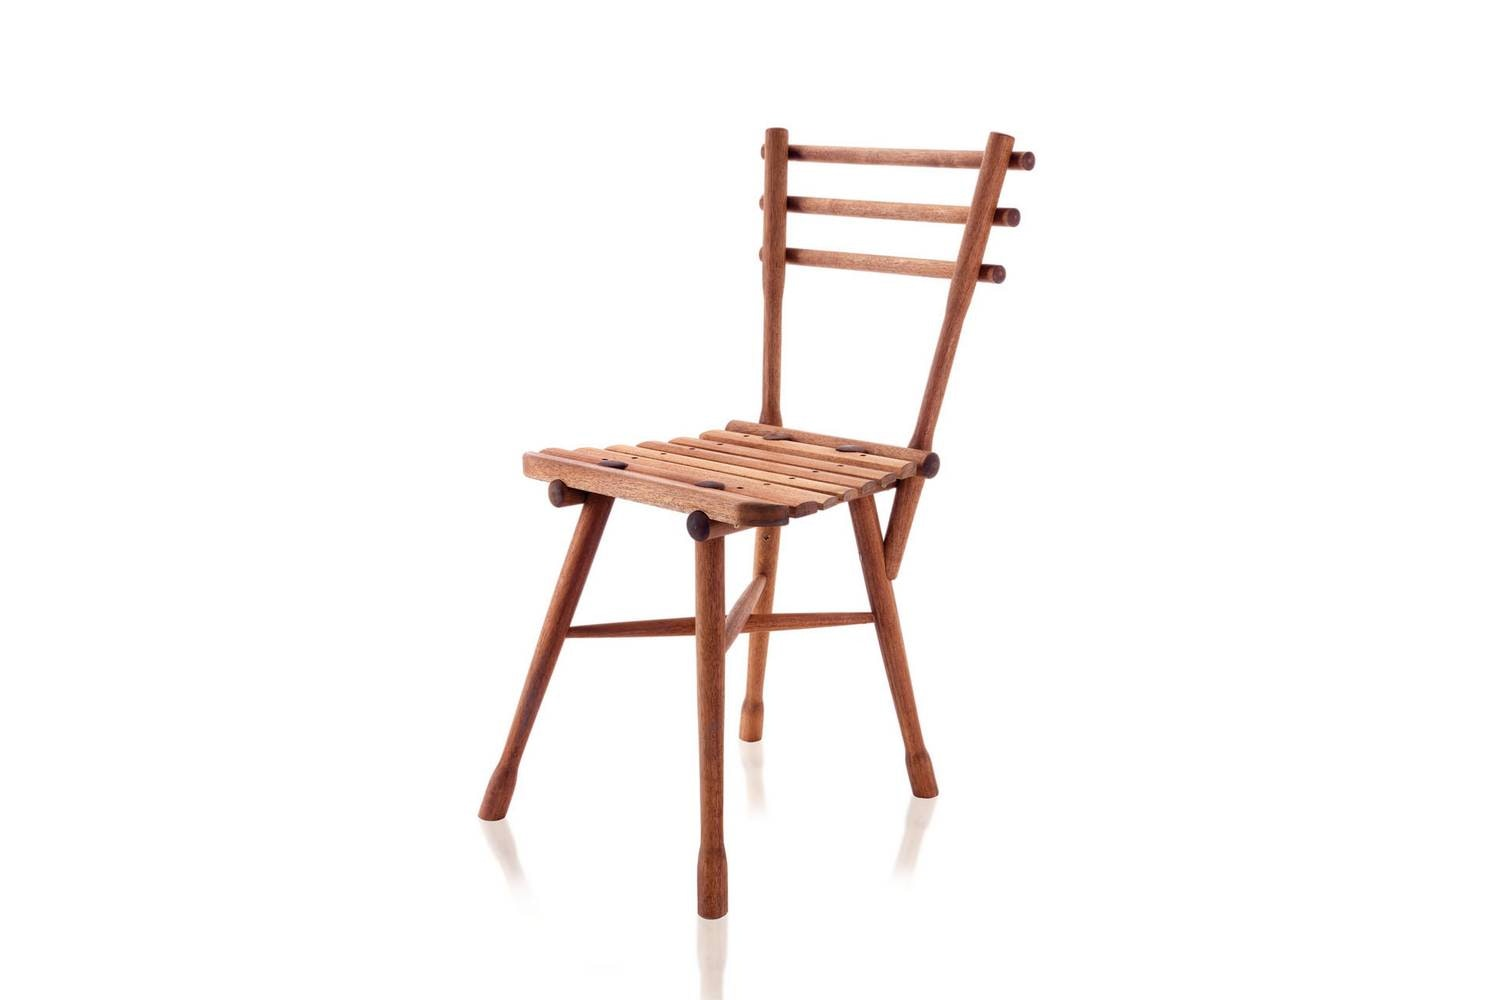 Garten Chair by Gebruder Thonet Vienna for Wiener GTV Design